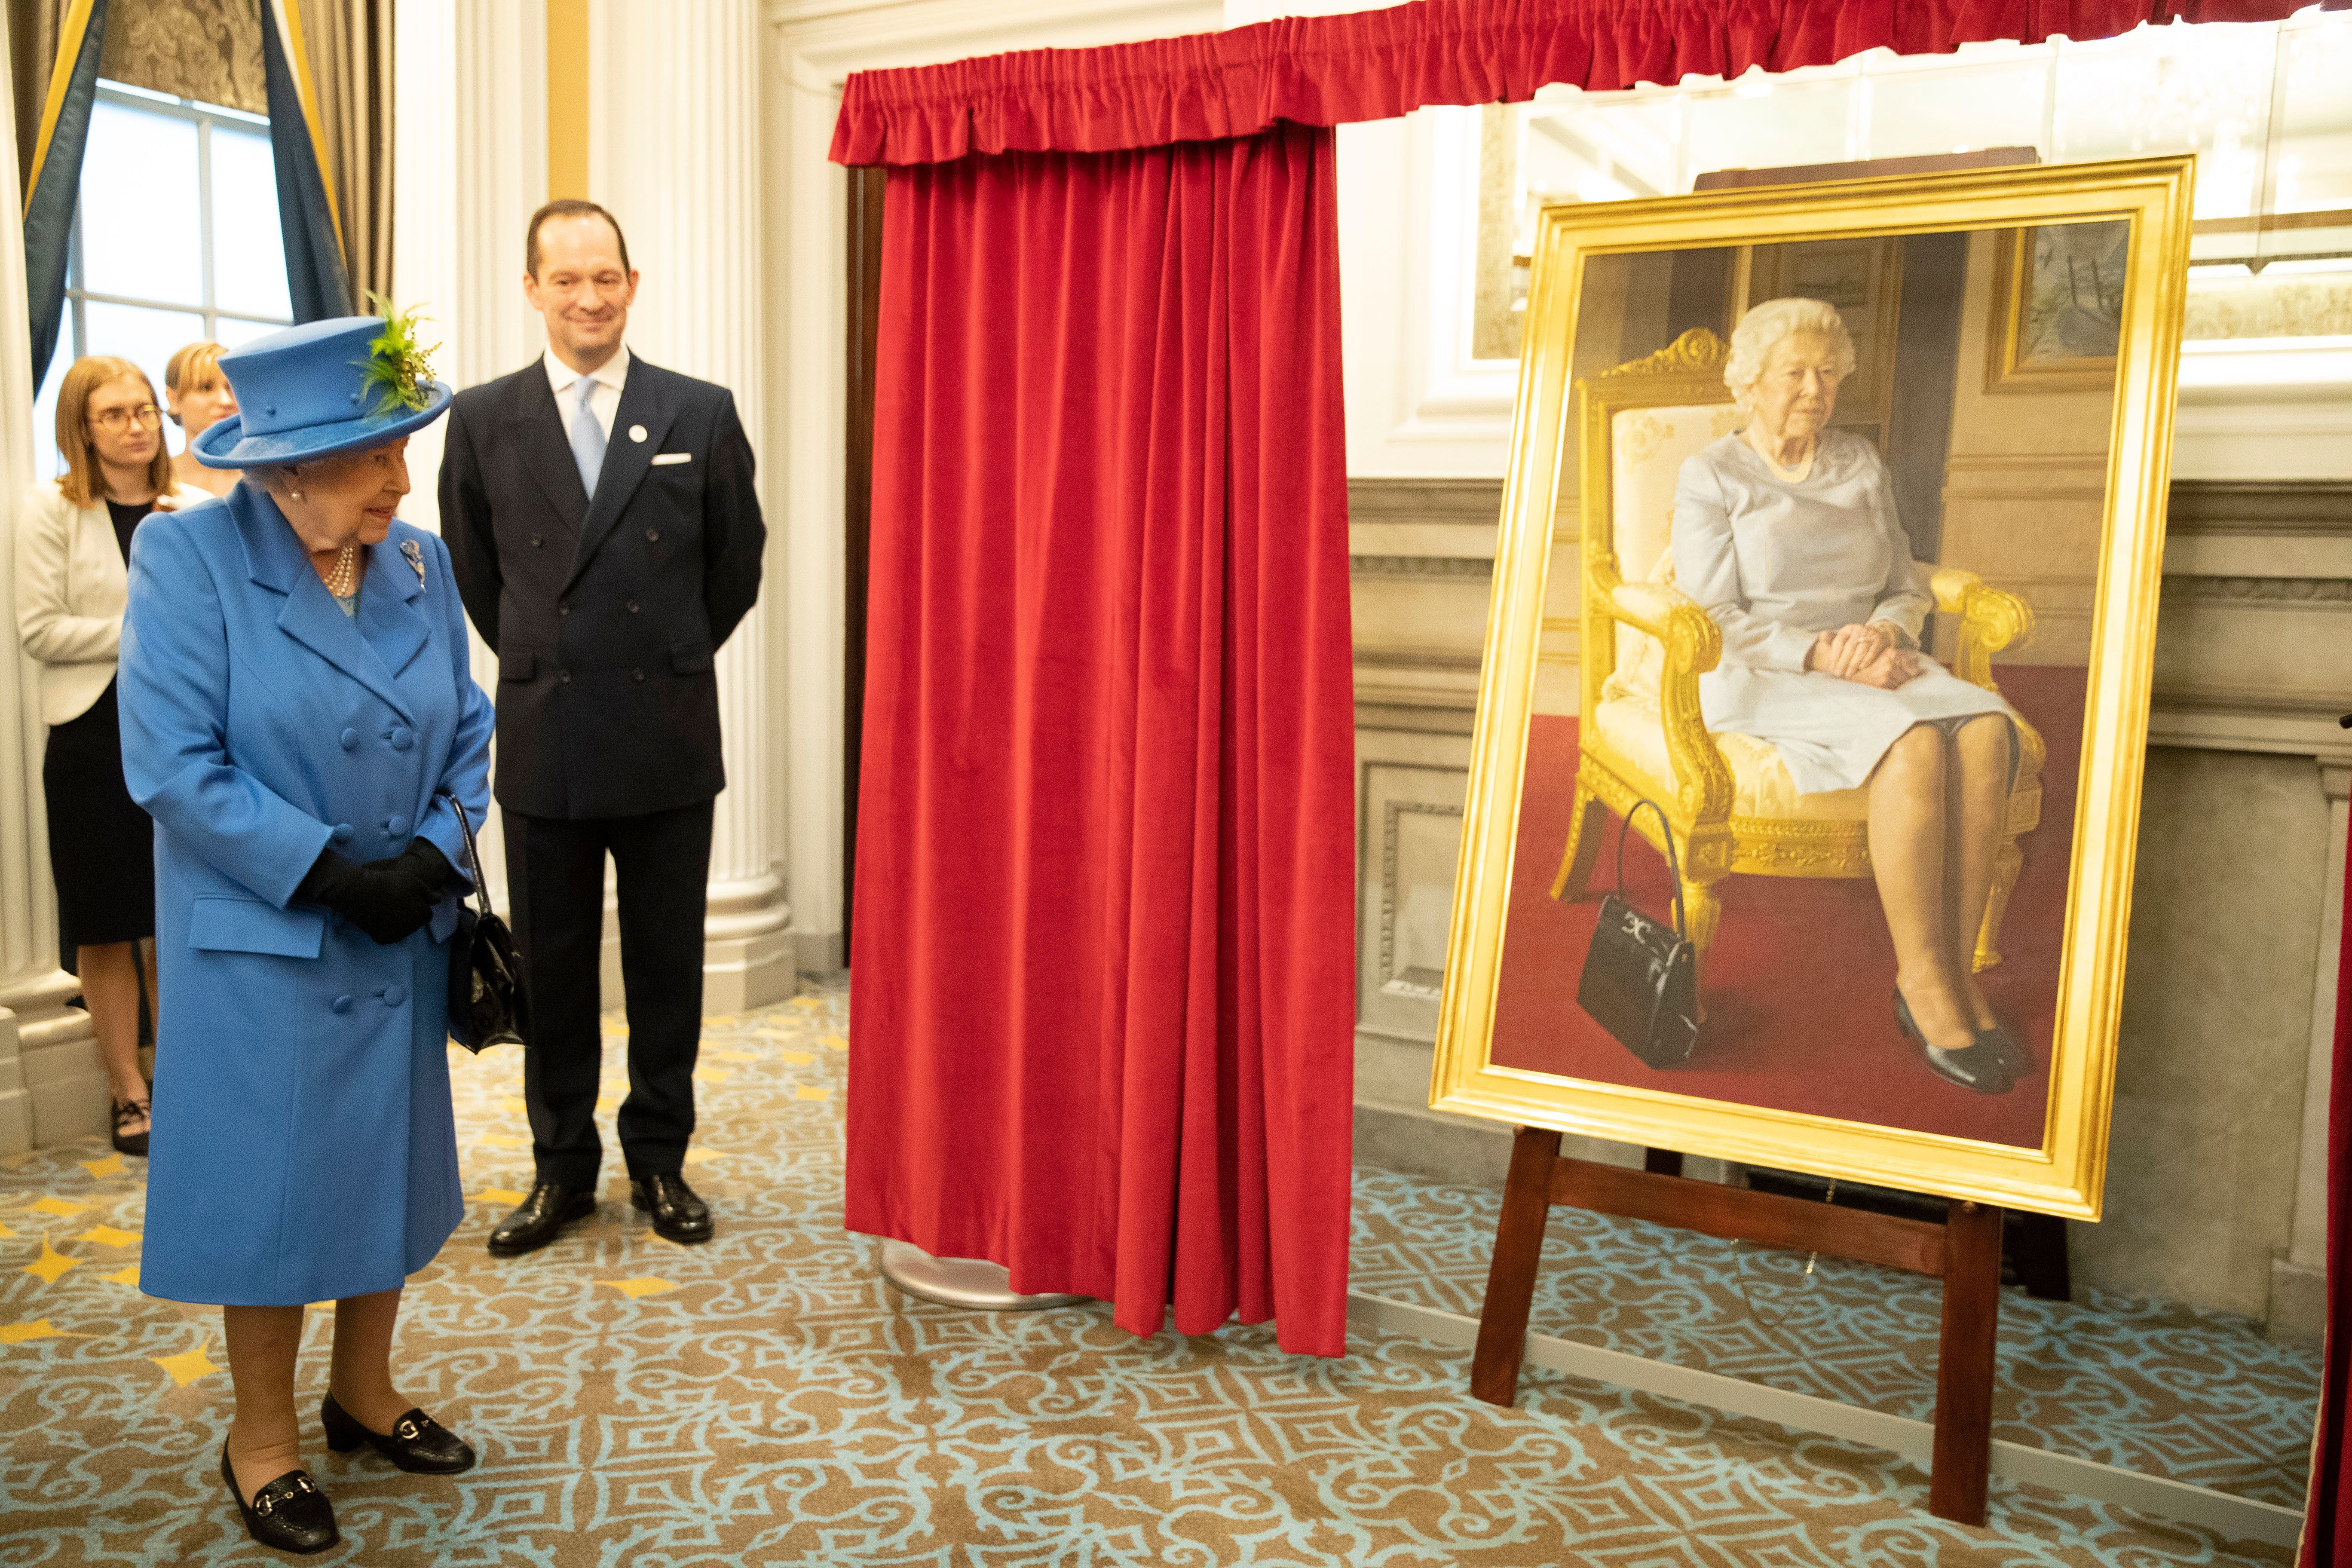 LONDON, ENGLAND - OCTOBER 17: Queen Elizabeth II views a new portrait depicting Her Majesty painted by BP Portrait Award 2017 winner, Benjamin Sullivan, the portrait commissioned to celebrate 100 years of the RAF Club during the opening of the new wing and unveiling of a series of newly-commissioned artworks as she visits the RAF Club to mark its centenary year on October 17, 2018 in London, England. (Photo by Heathcliff O'Malley - WPA Pool/Getty Images)